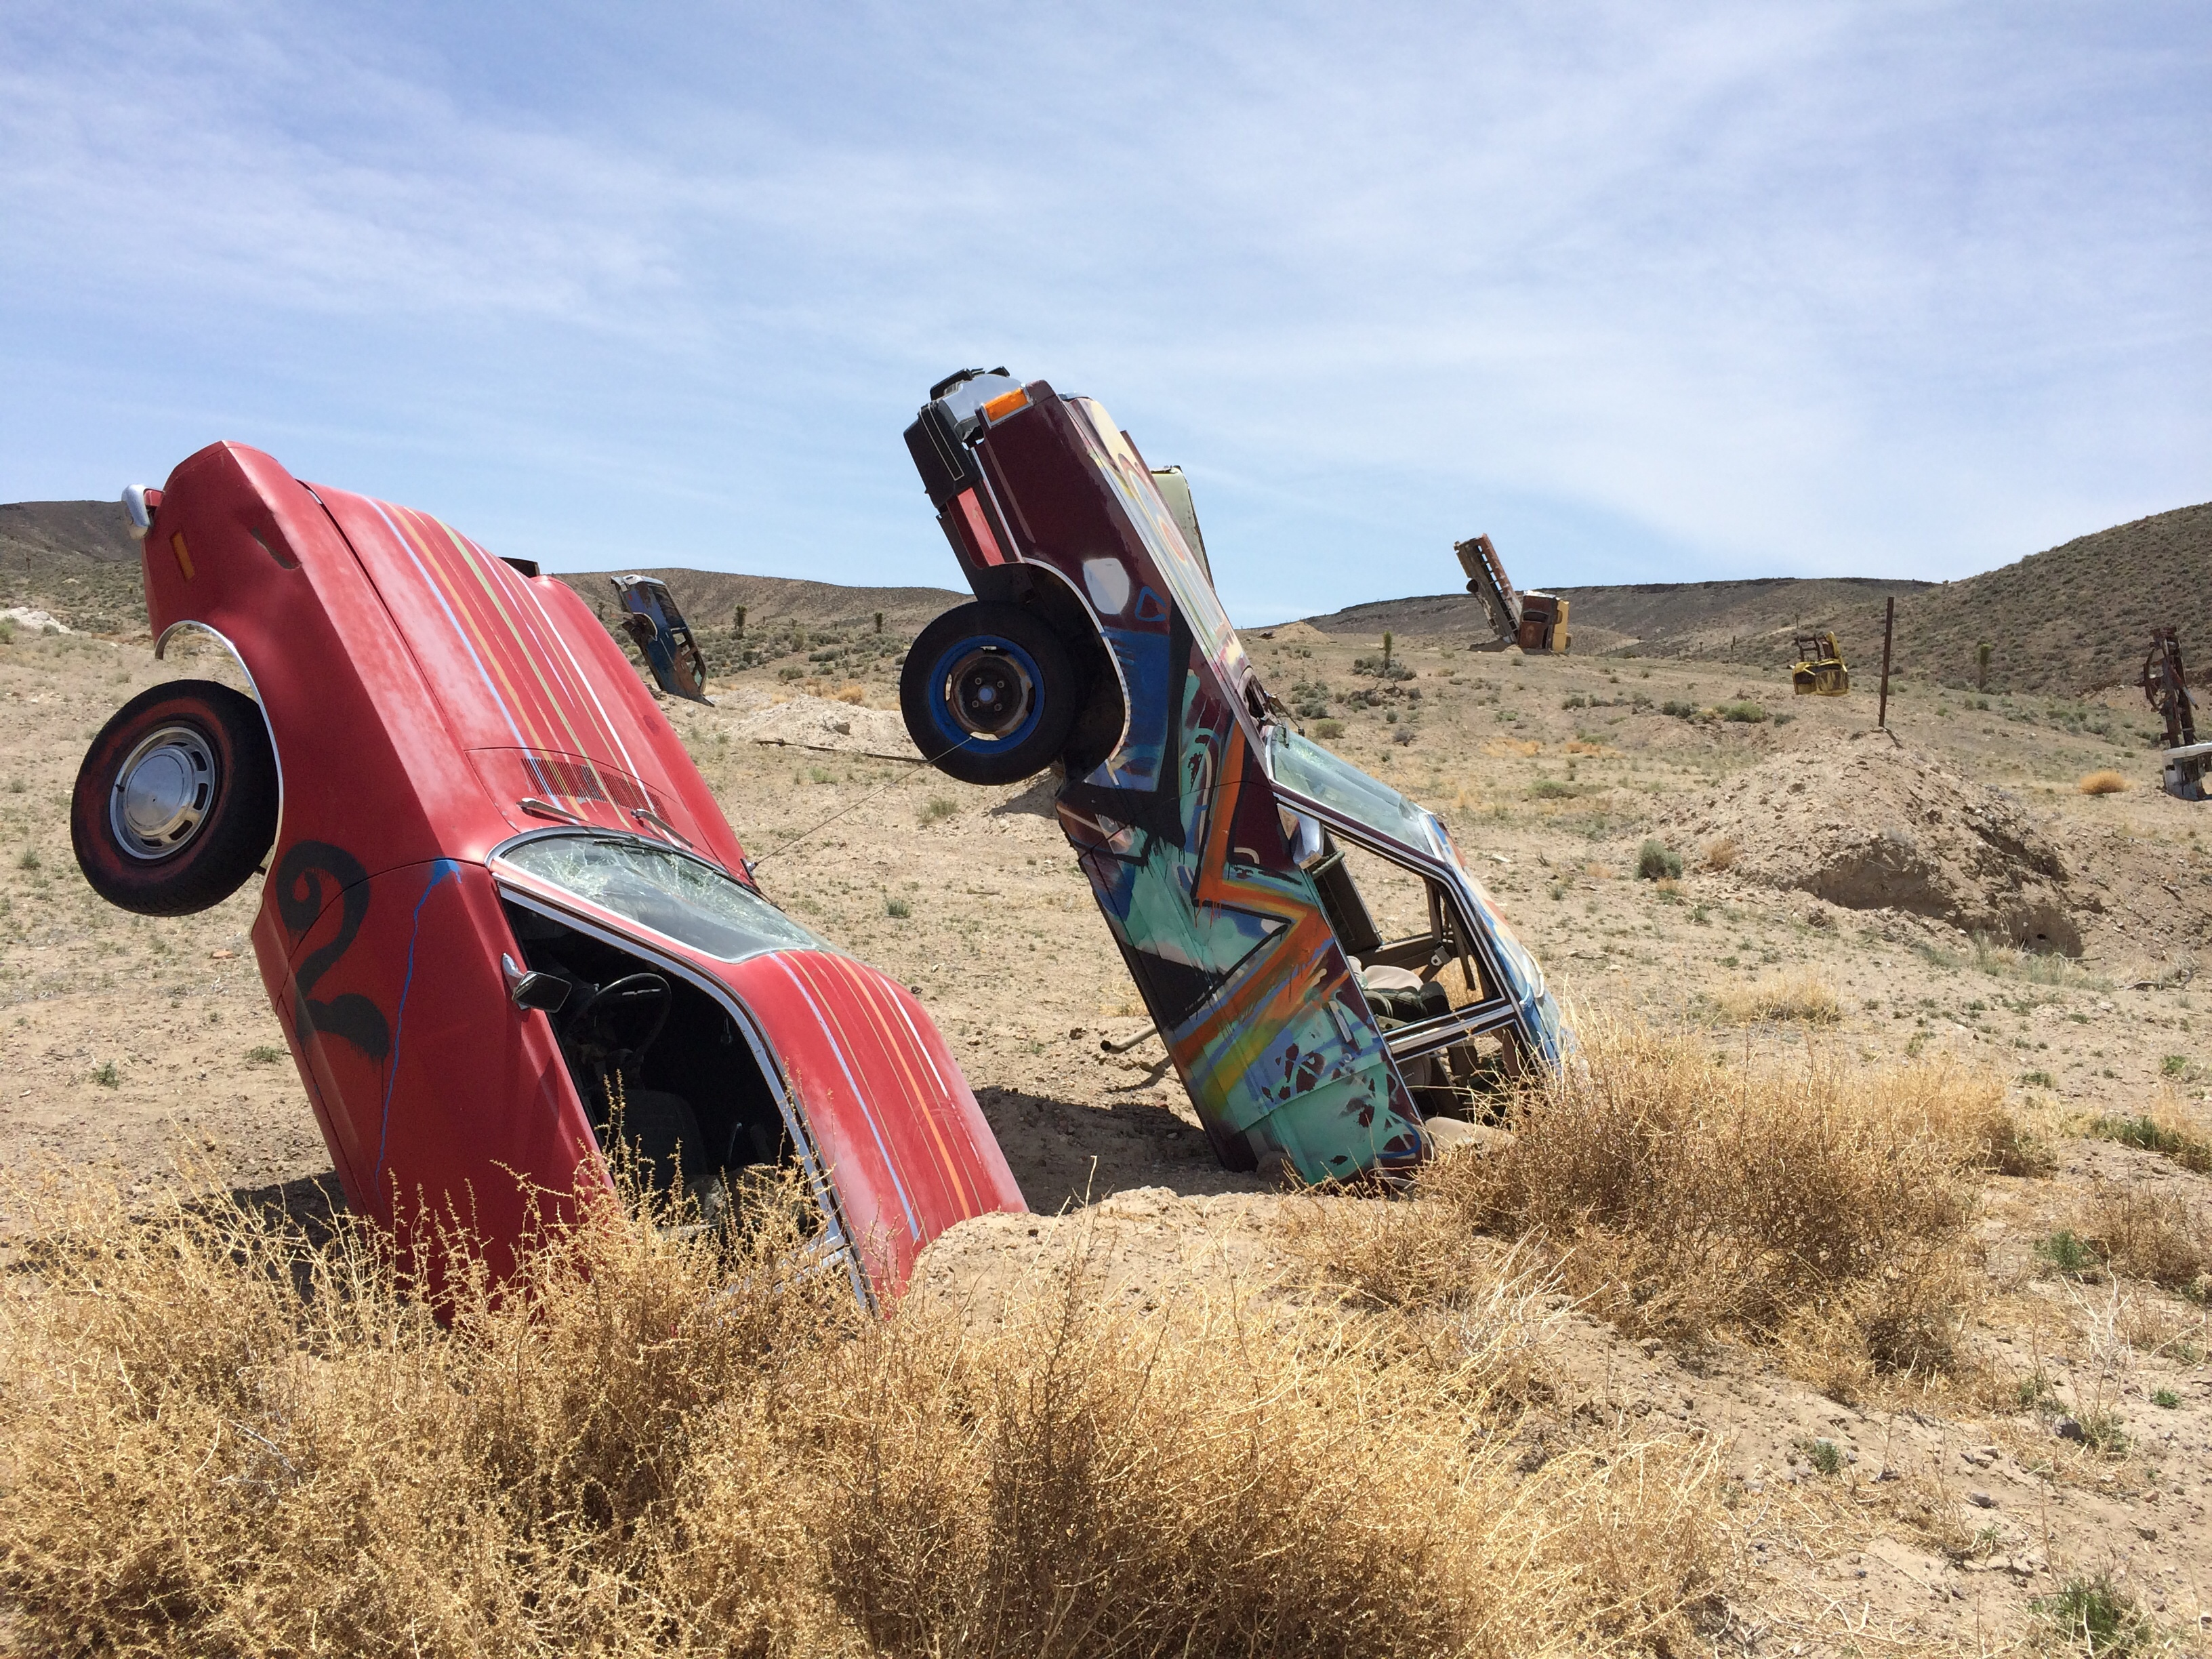 40 Cars 6 Friends And 1 Fun Road Trip My Adventure At A Car Forest In Goldfield Nevada Taken By The Wind